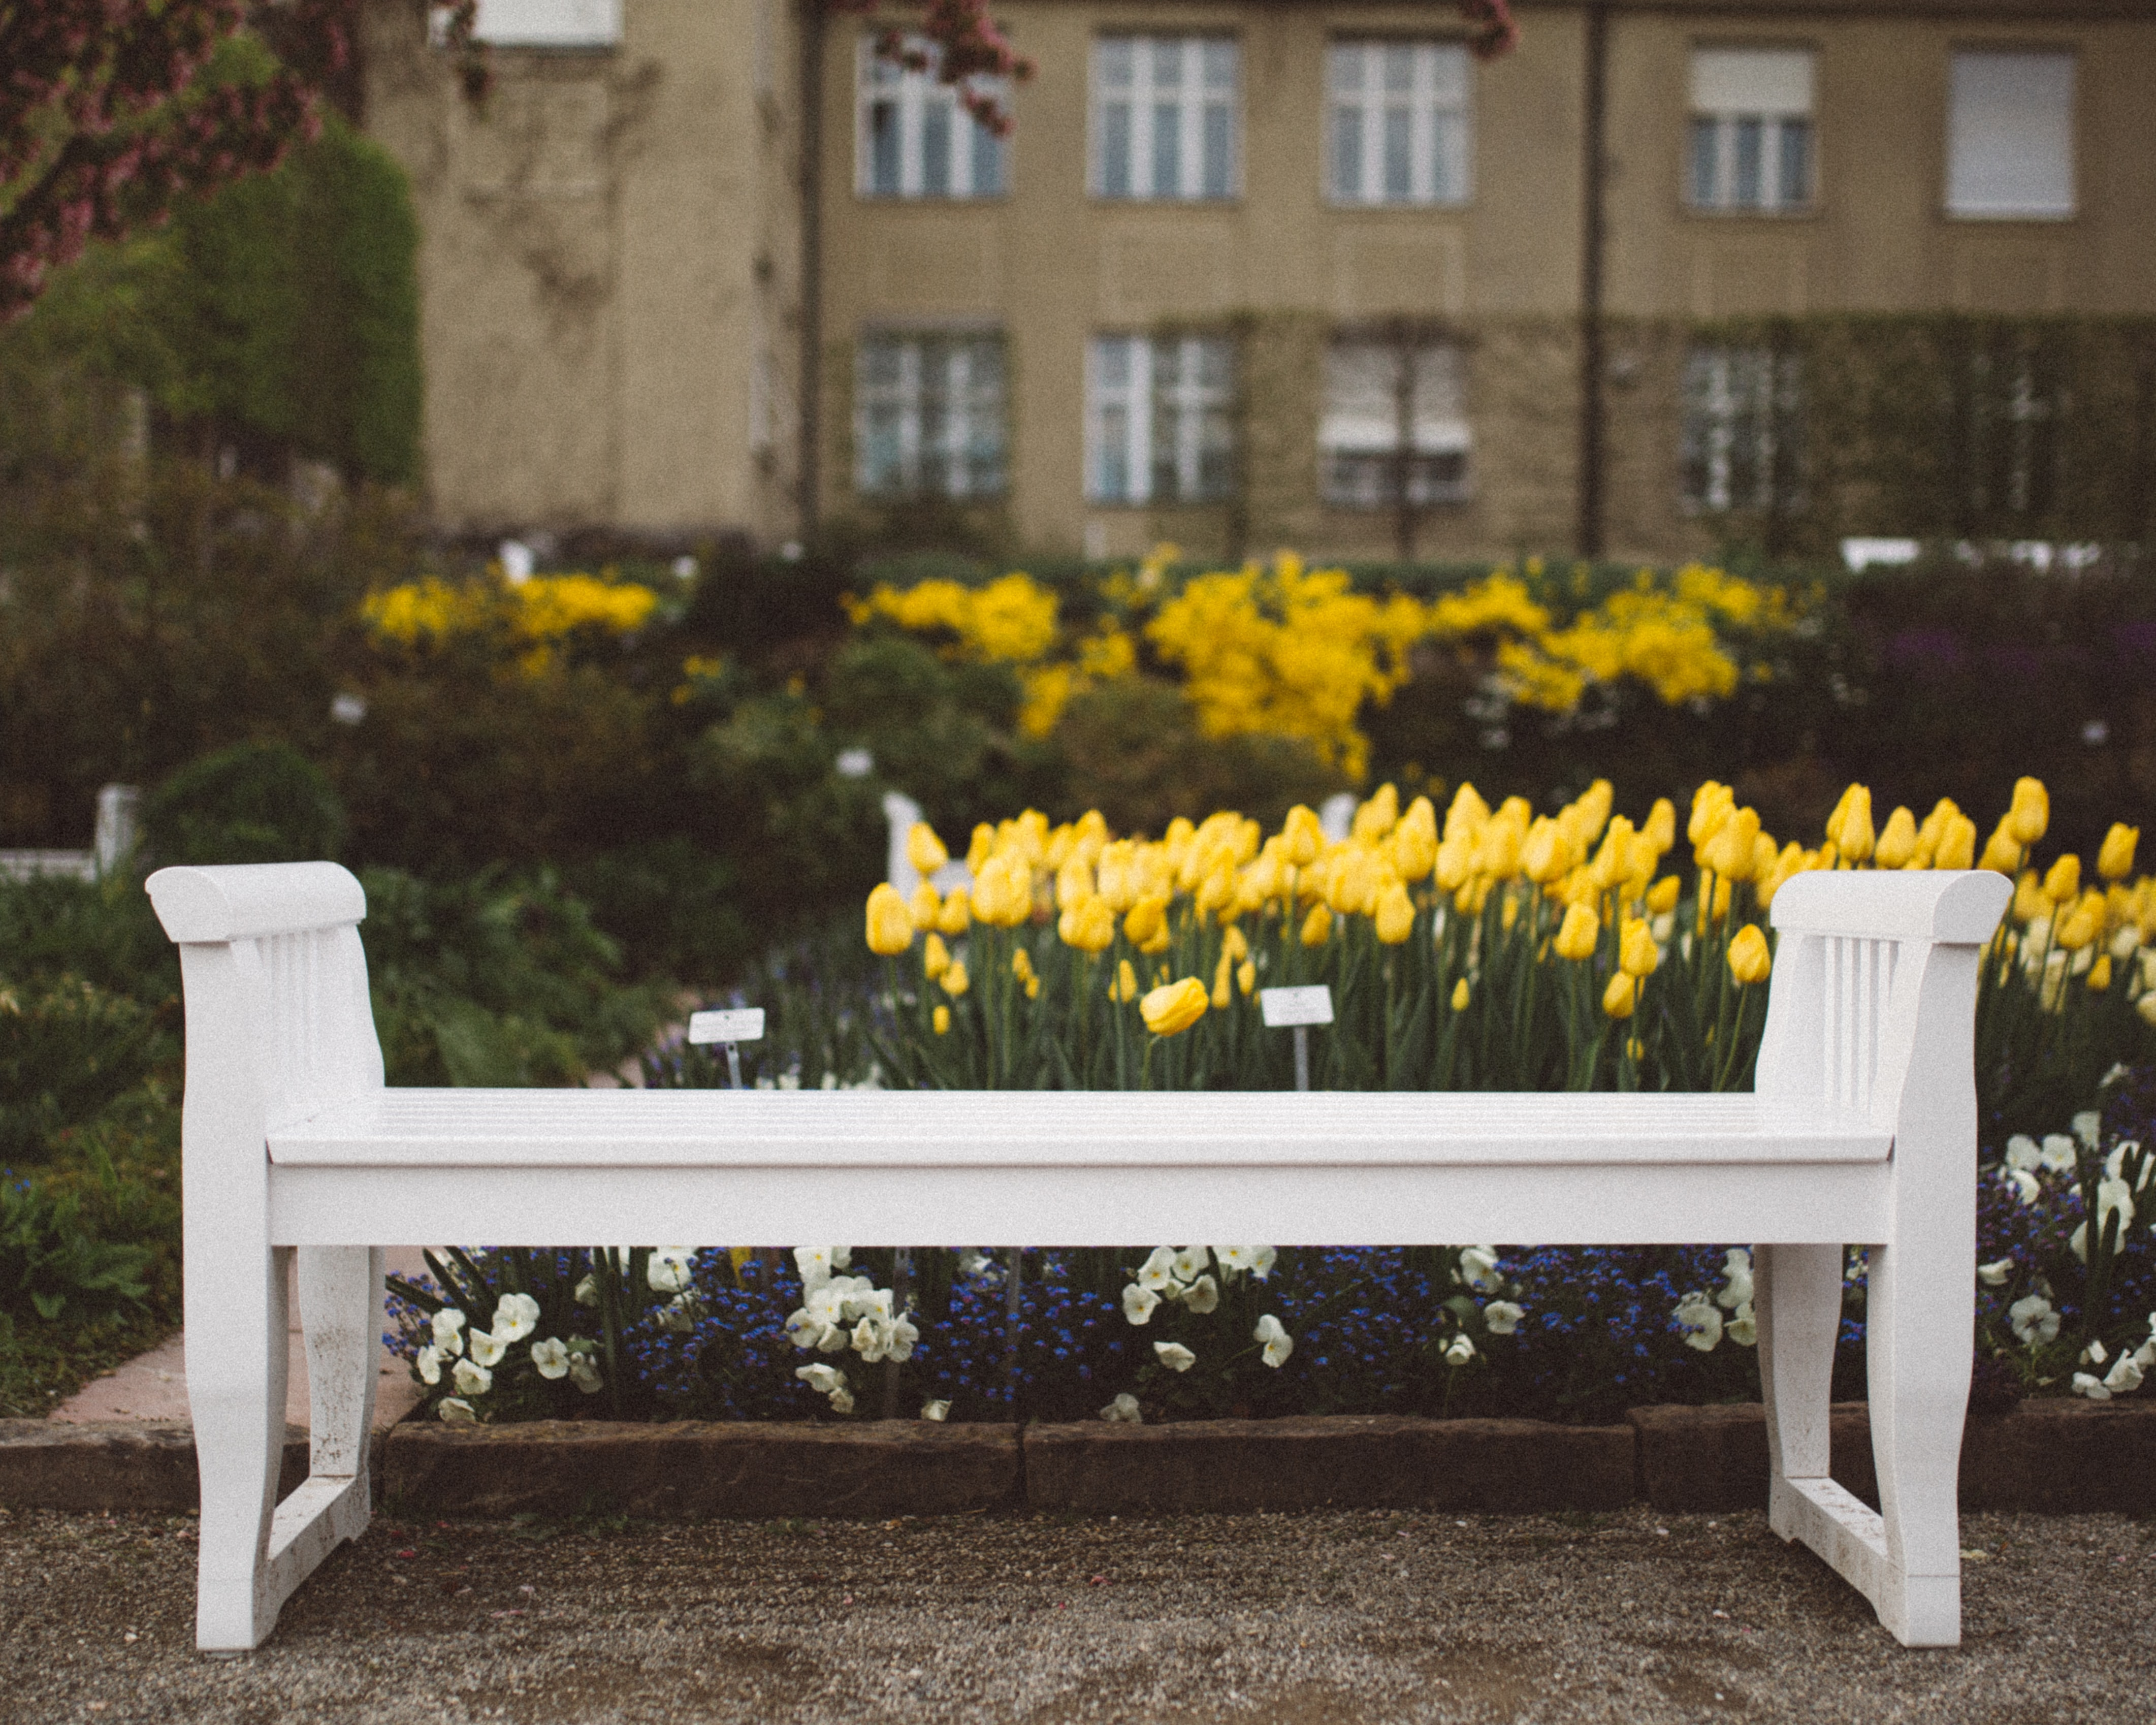 White bench in a garden in front of yellow tulip beds in a park